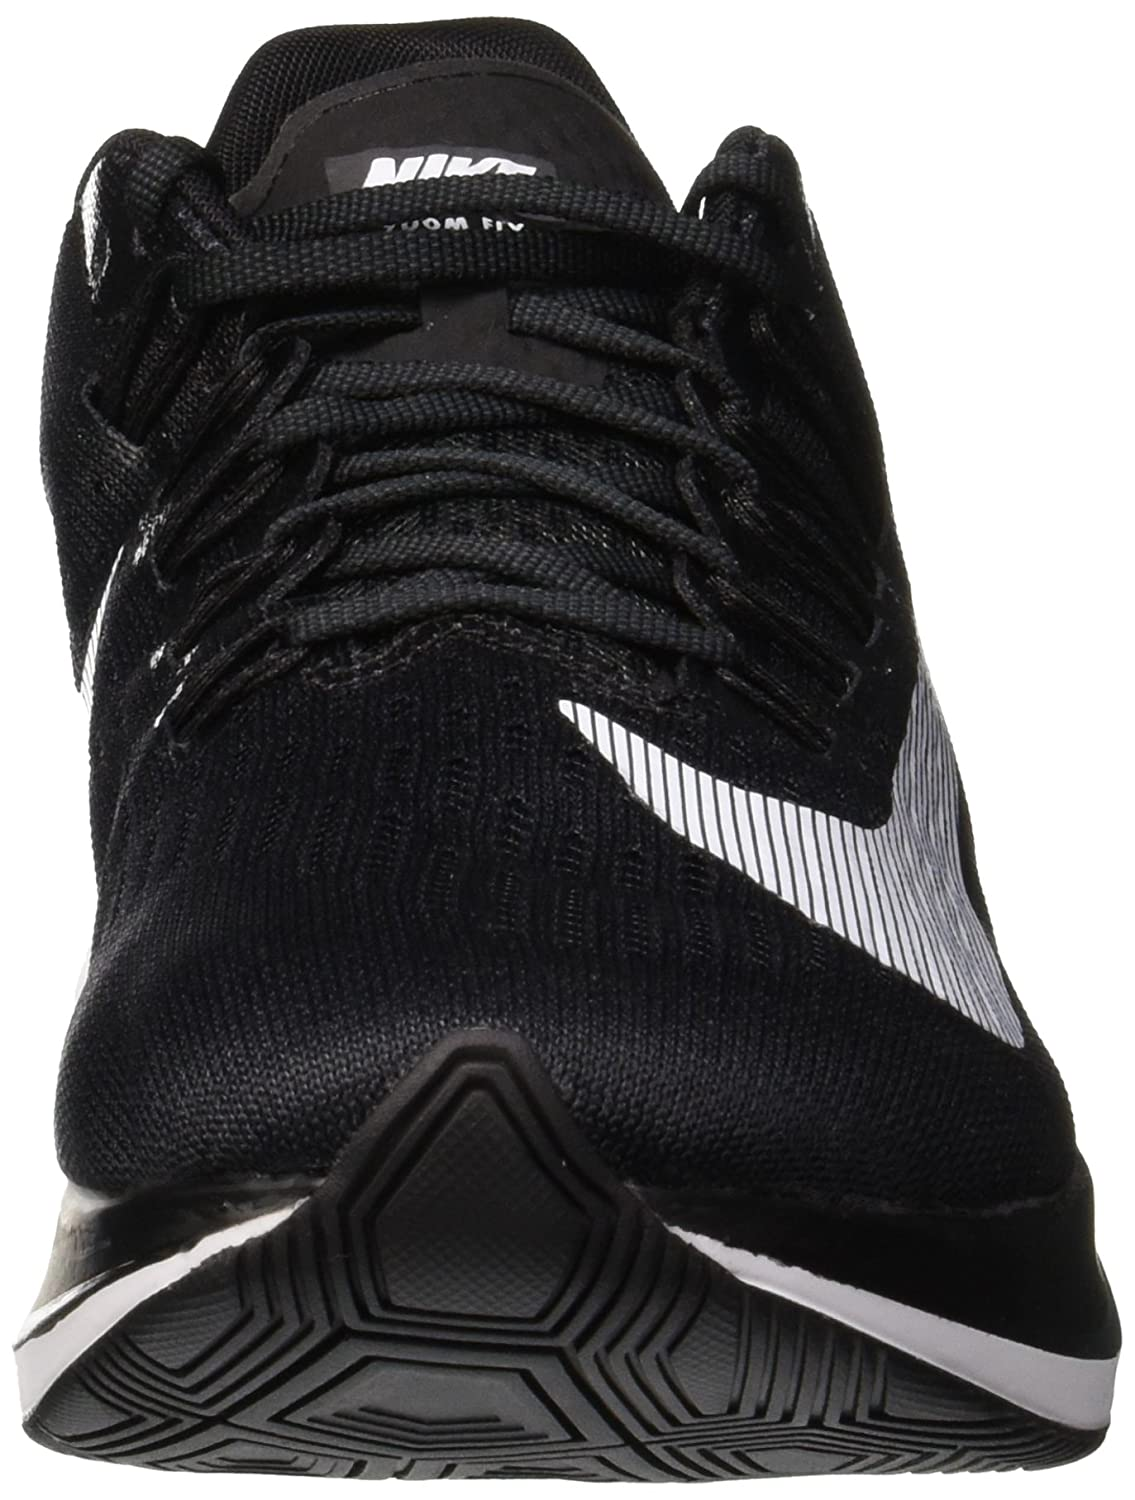 save off 2e526 9ee11 Amazon.com   Nike Mens Zoom Fly SP Lightweight Trainer Running Shoes    Track   Field   Cross Country